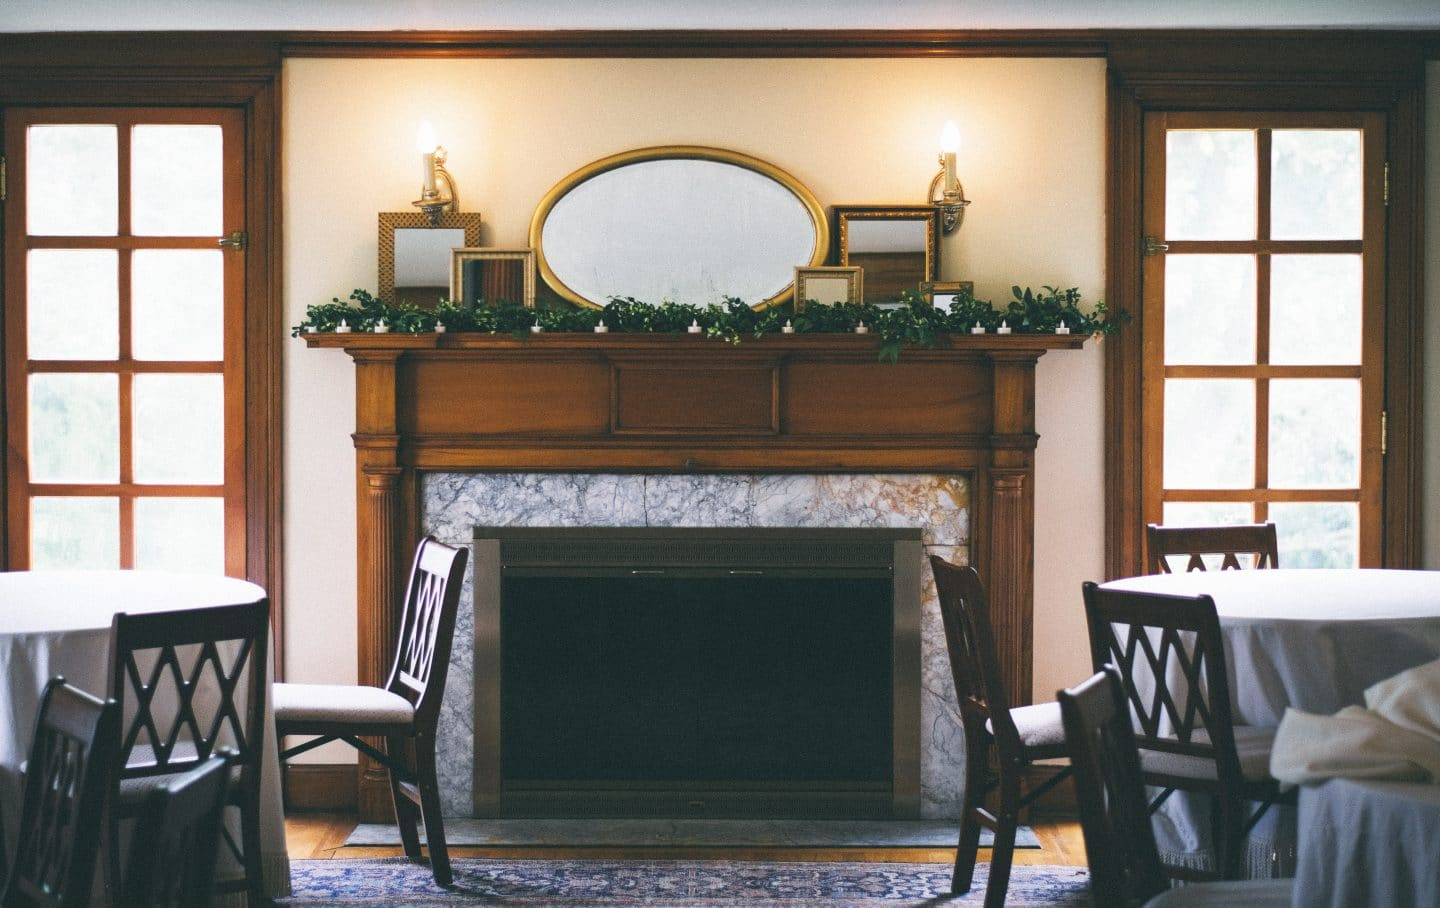 Home Improvement Tips & Tricks: Adding Flair to a Fireplace